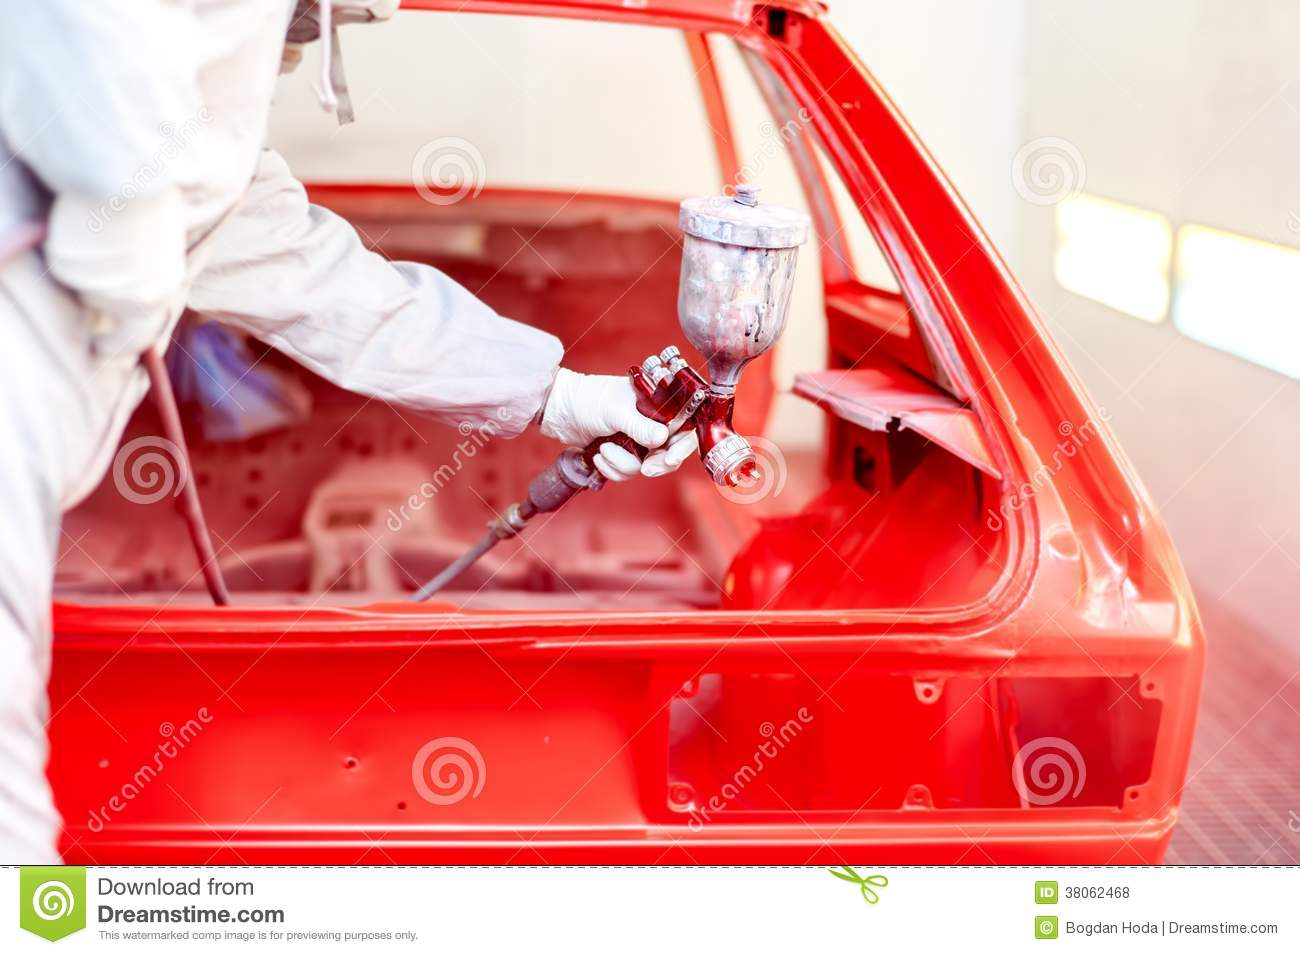 Close Up Of Spray Paint Gun With Worker Working On A Red